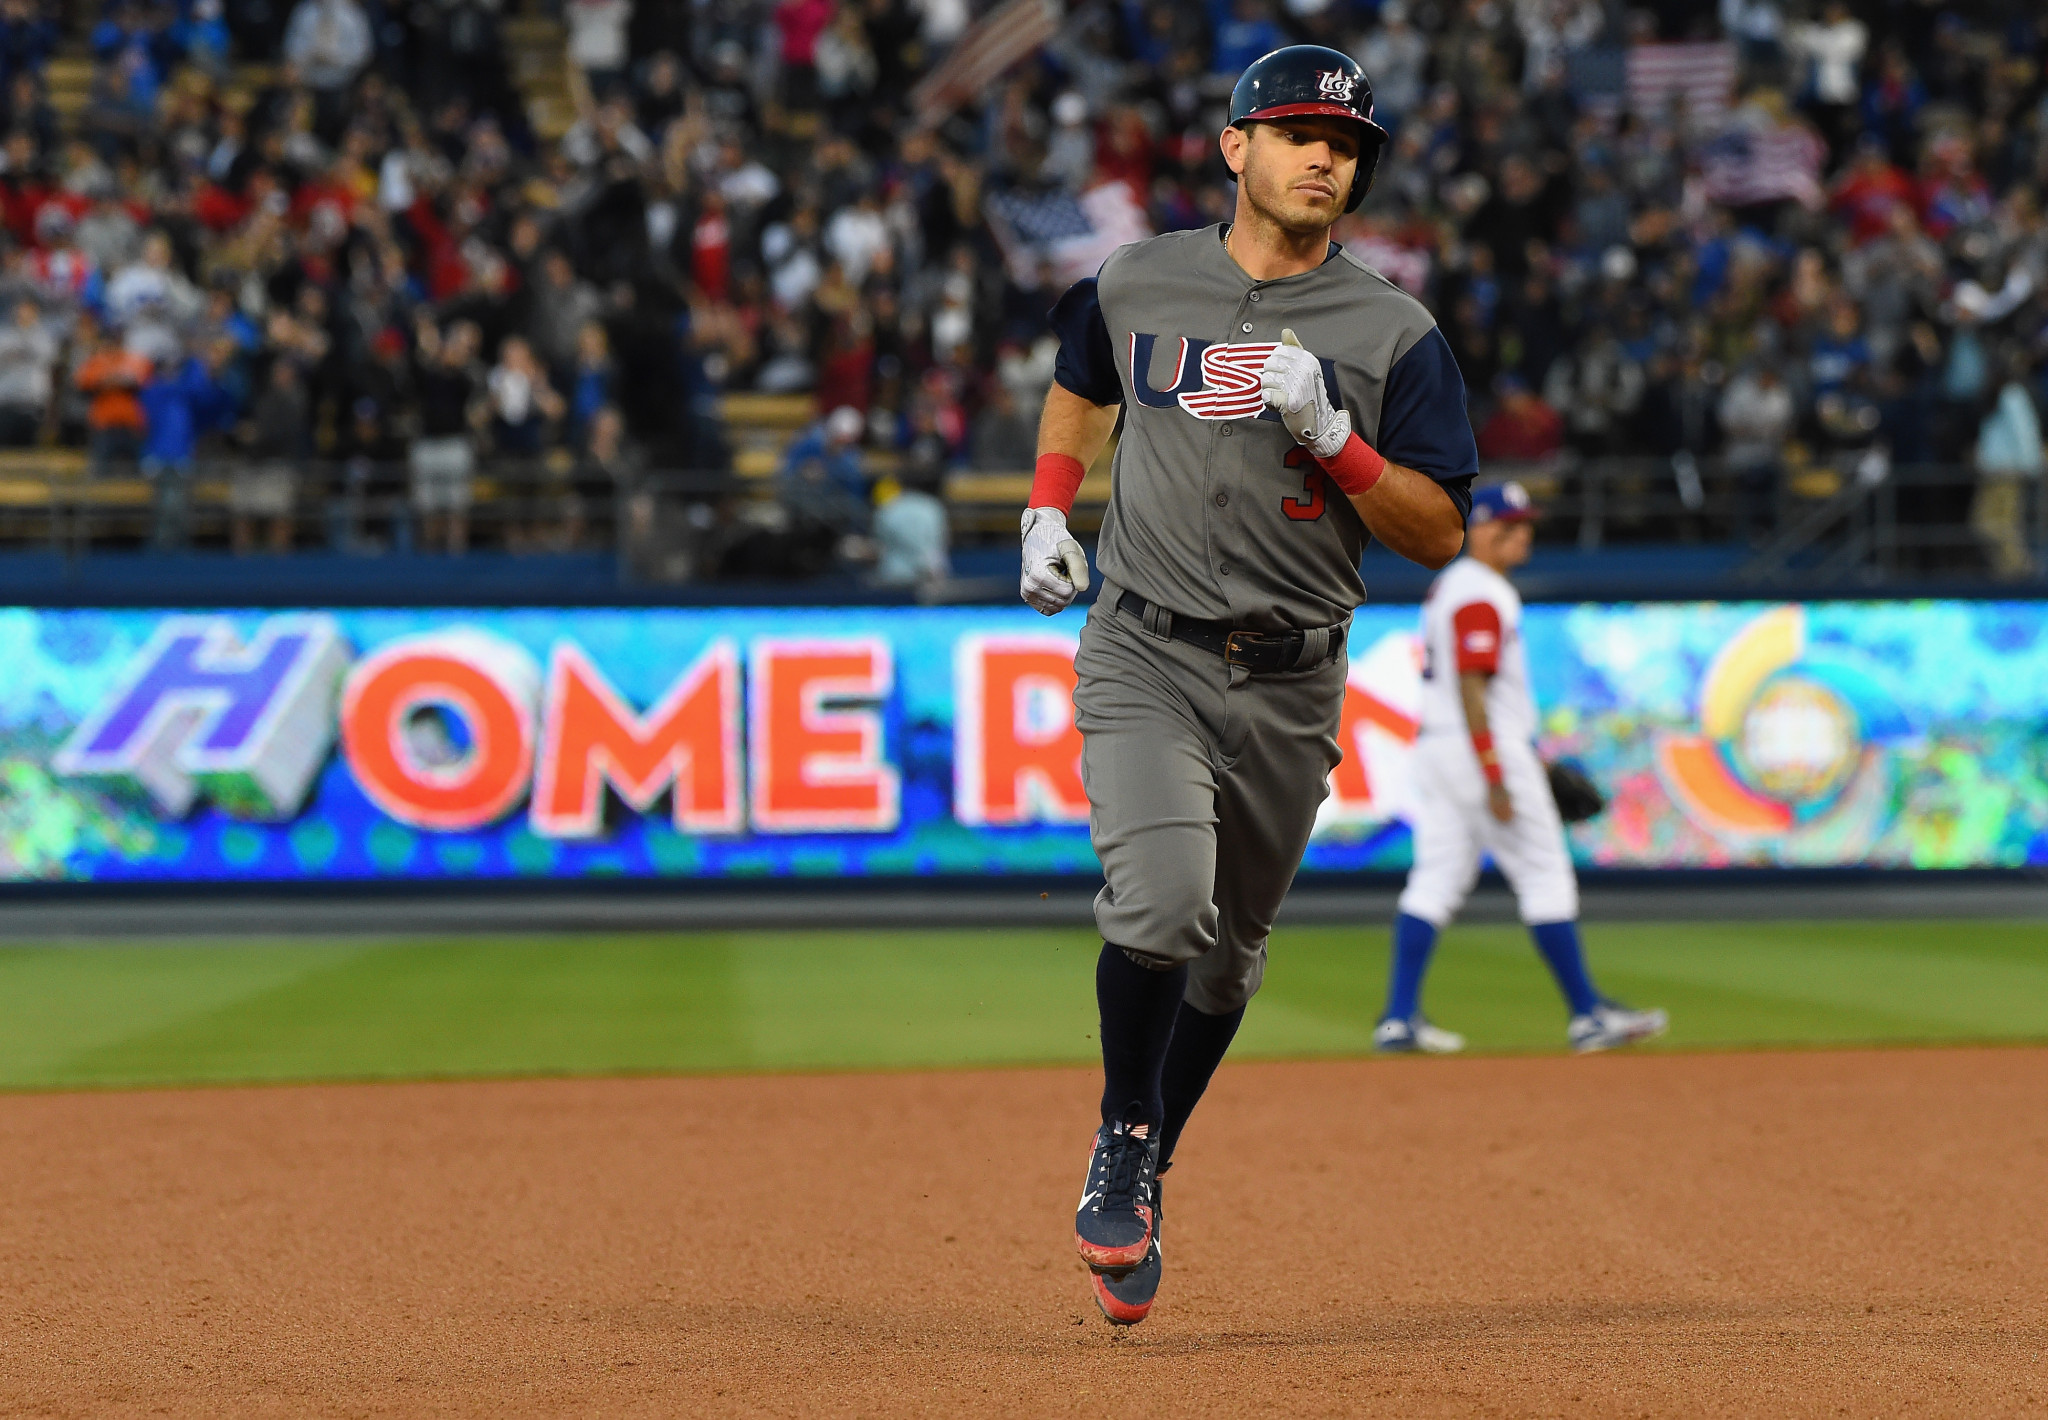 Ian Kinsler won the World Baseball Classic in 2017, playing for the United States ©Getty Images